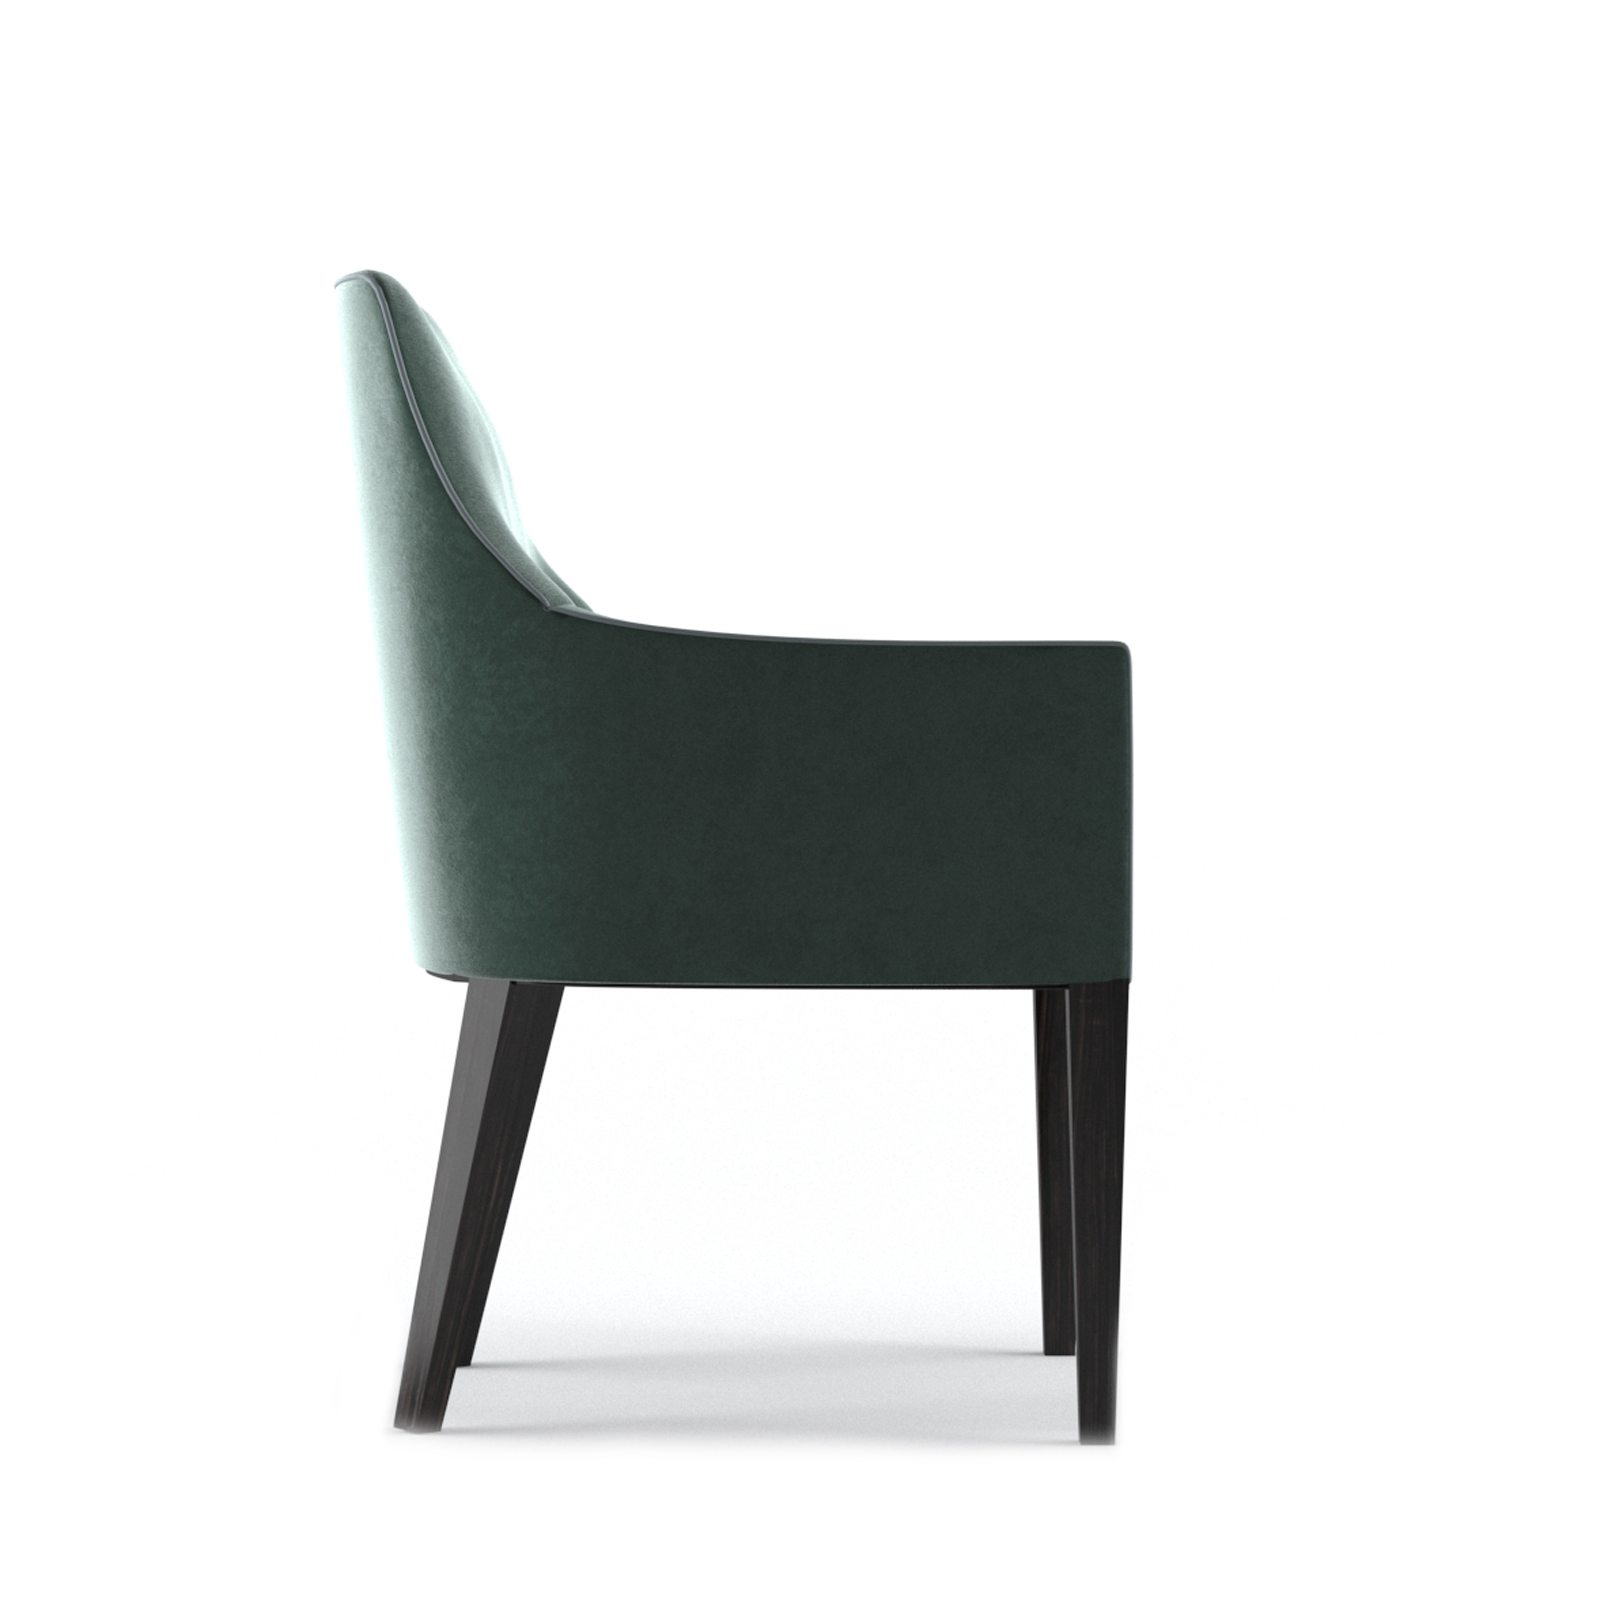 Balfour-Carver-Chair-by-Bonham-&-Bonham-09